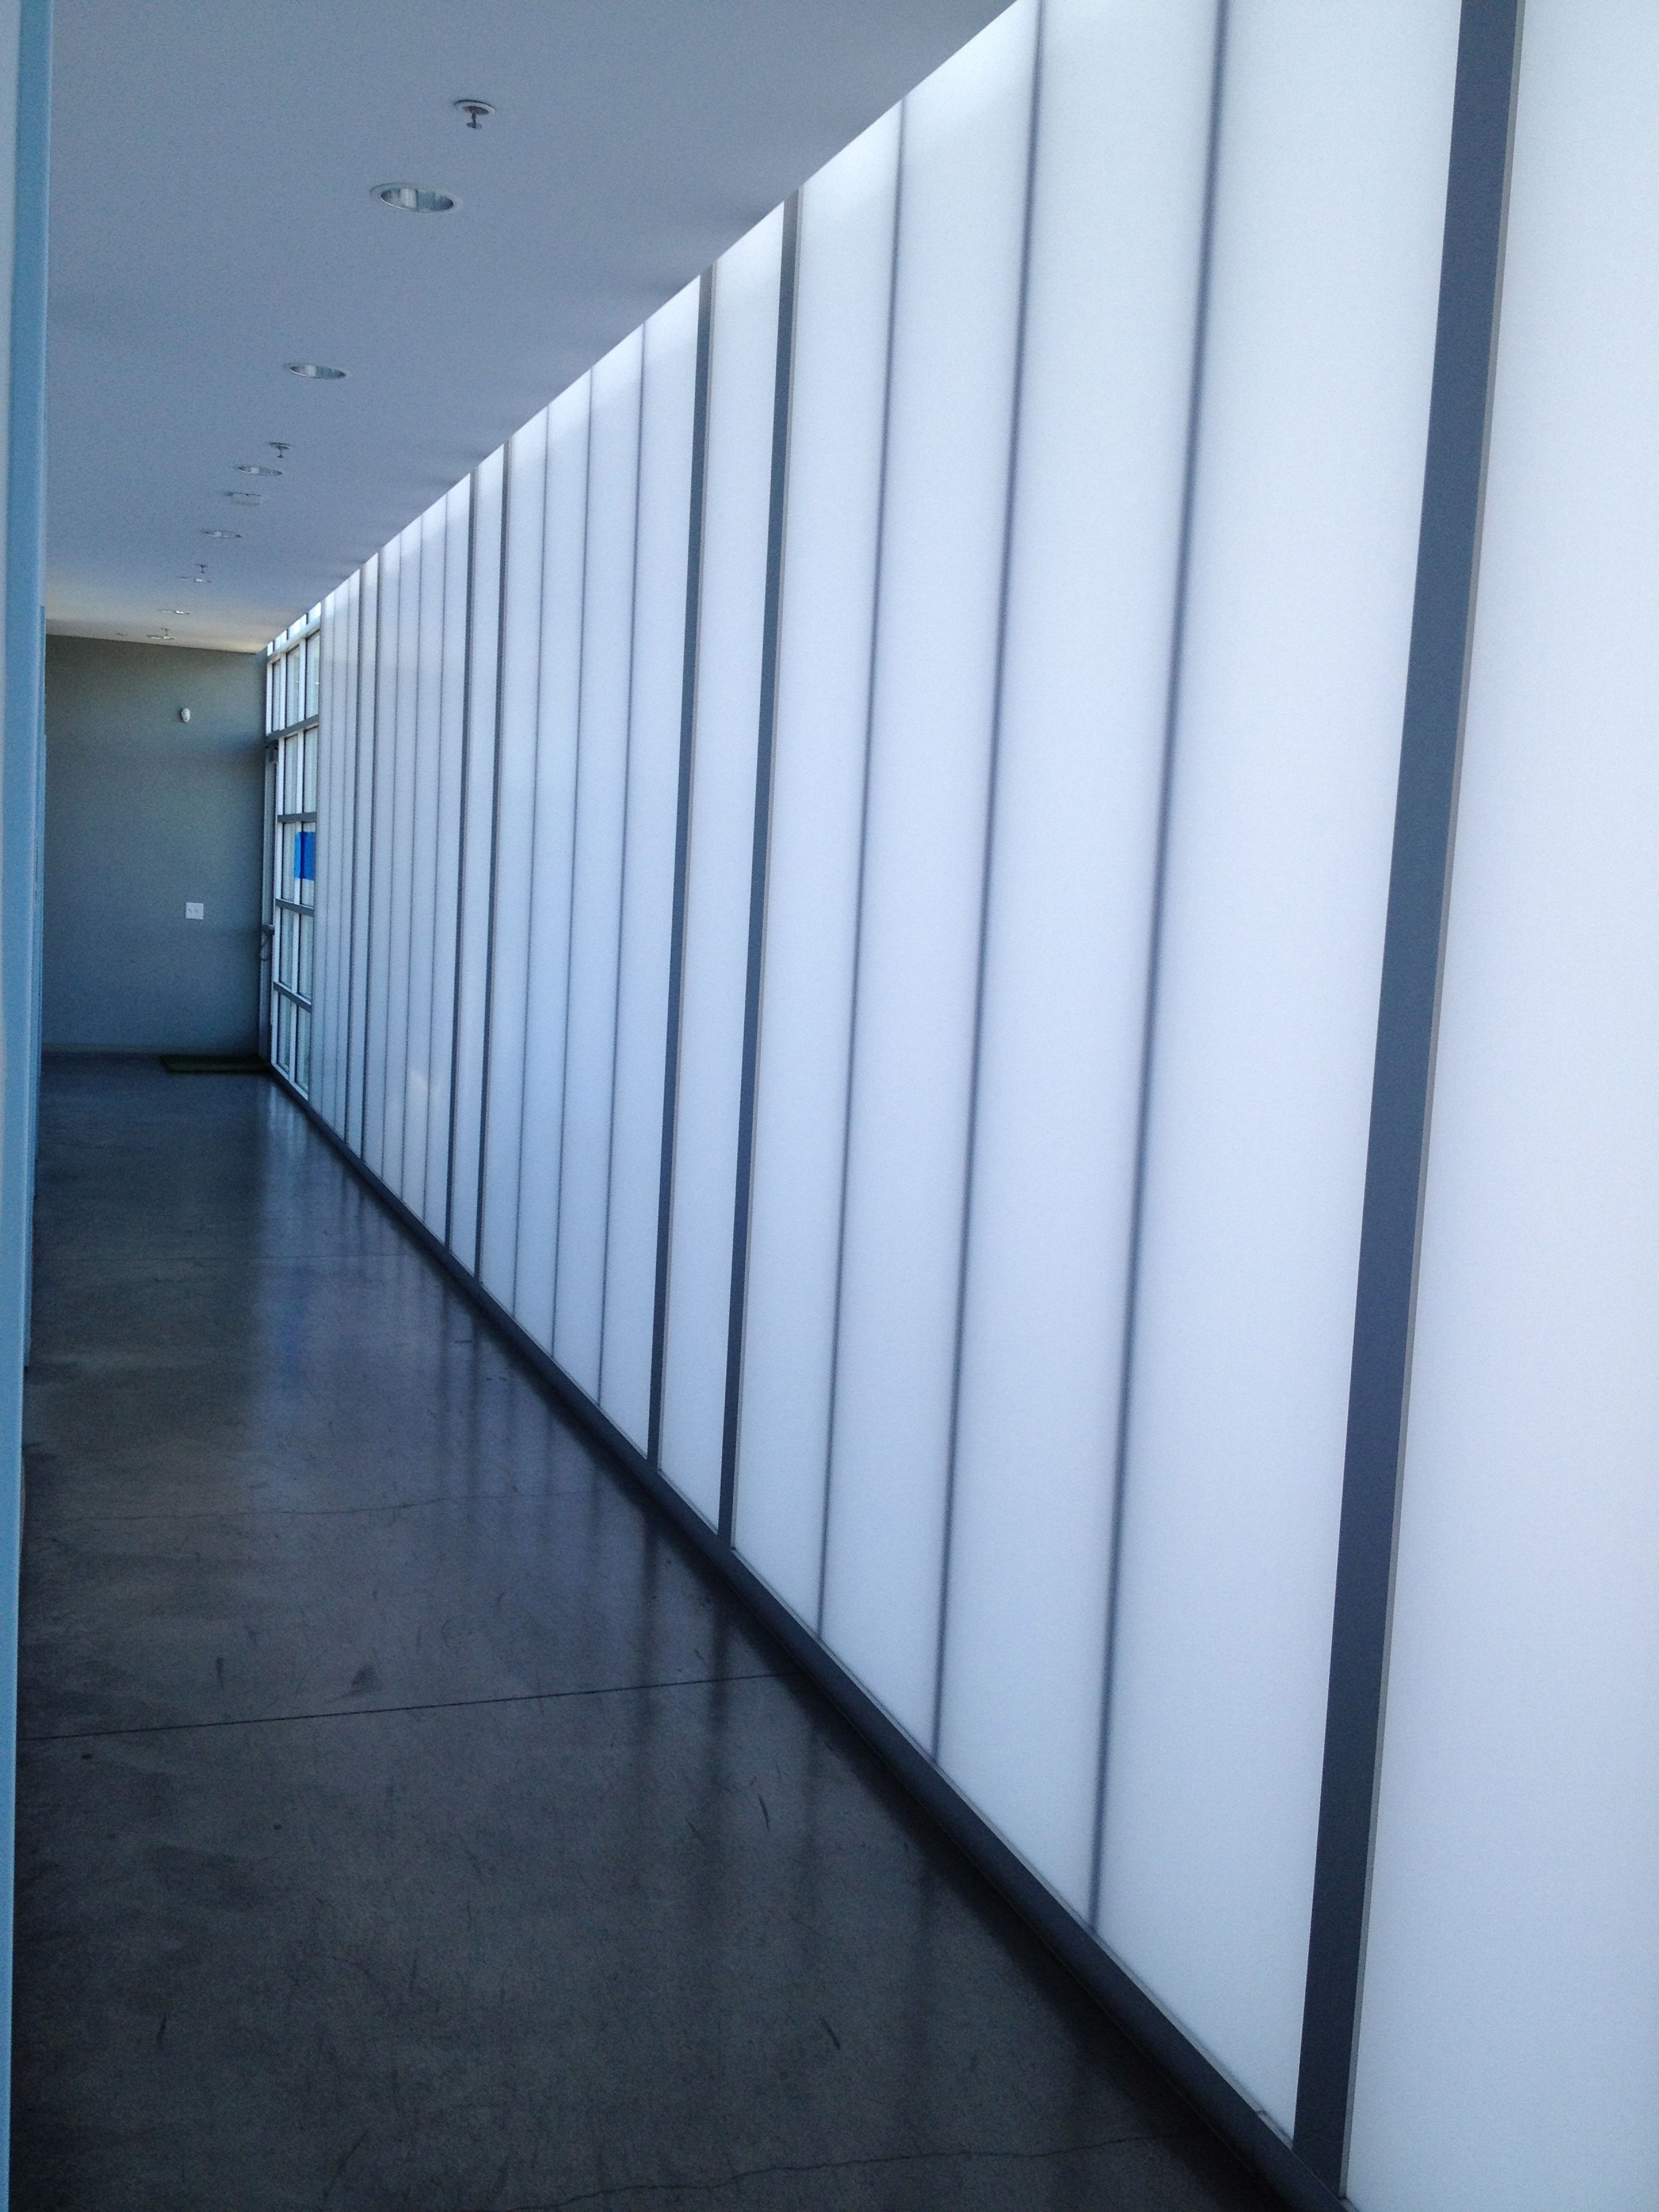 Cpi Polycarbonate Wall, Interior, It Glowed